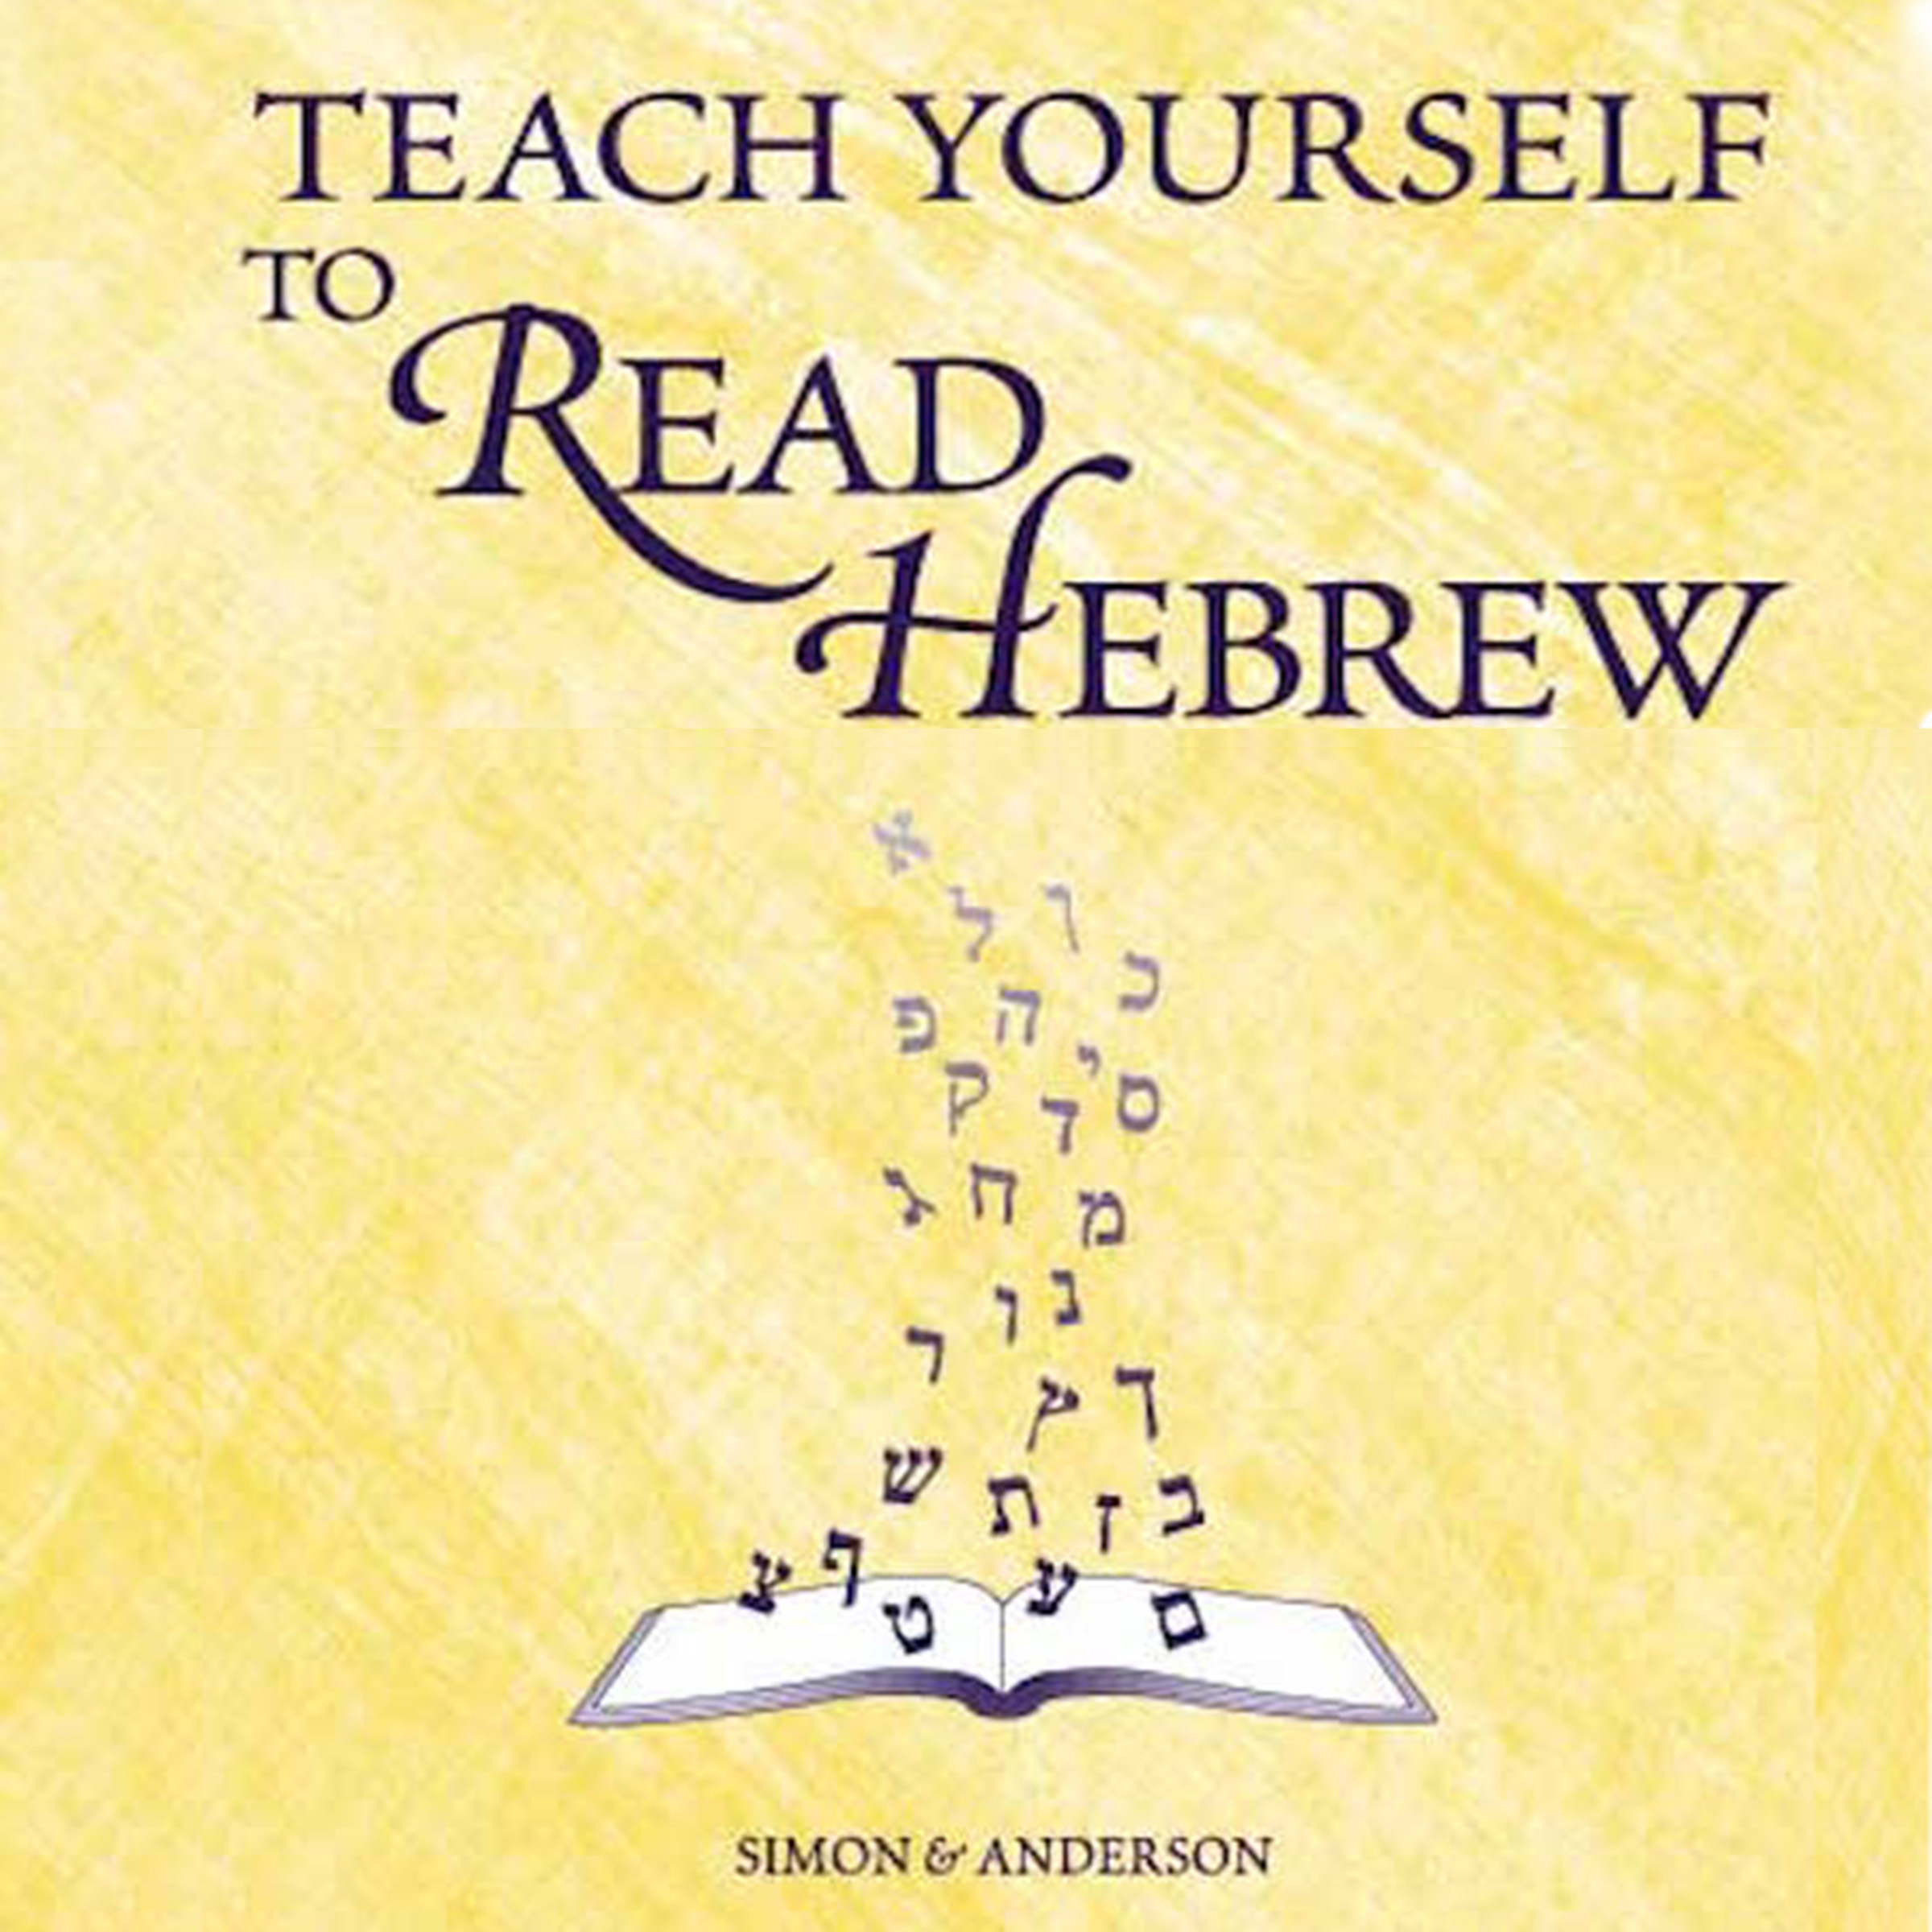 Teach Yourself To Read Hebrew Audio Companion Downloadxx